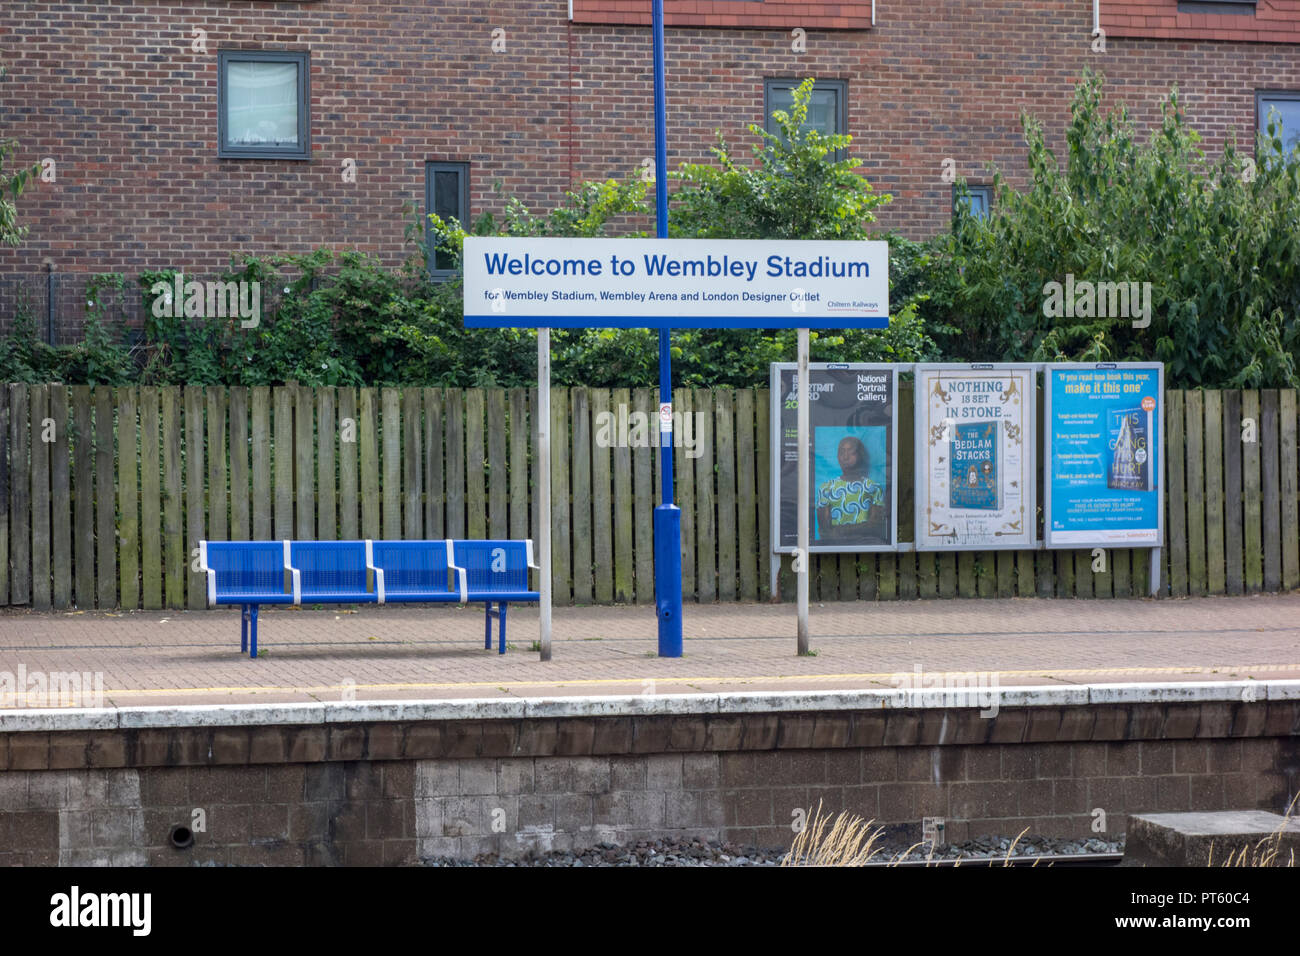 Wembley Stadium railway station, London, UK - Stock Image